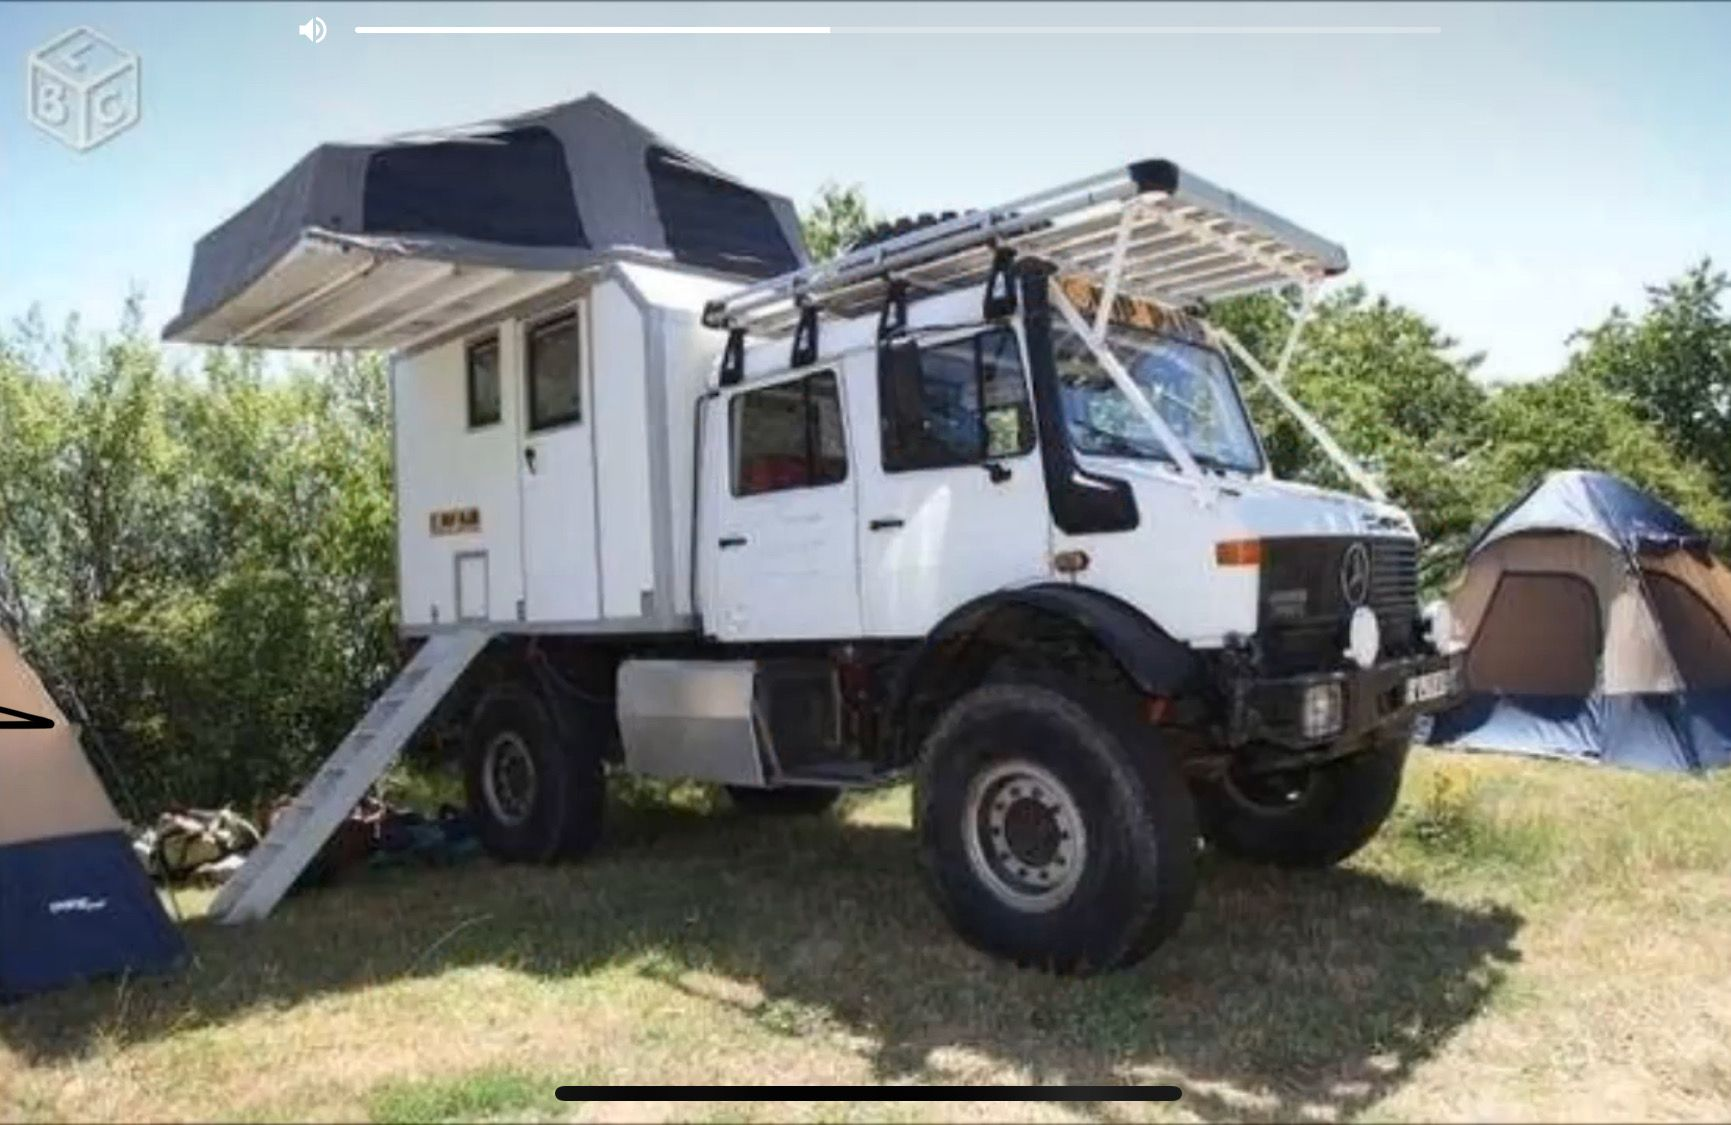 Unimog Camper Rv S Mercedes Benz Unimog Expedition